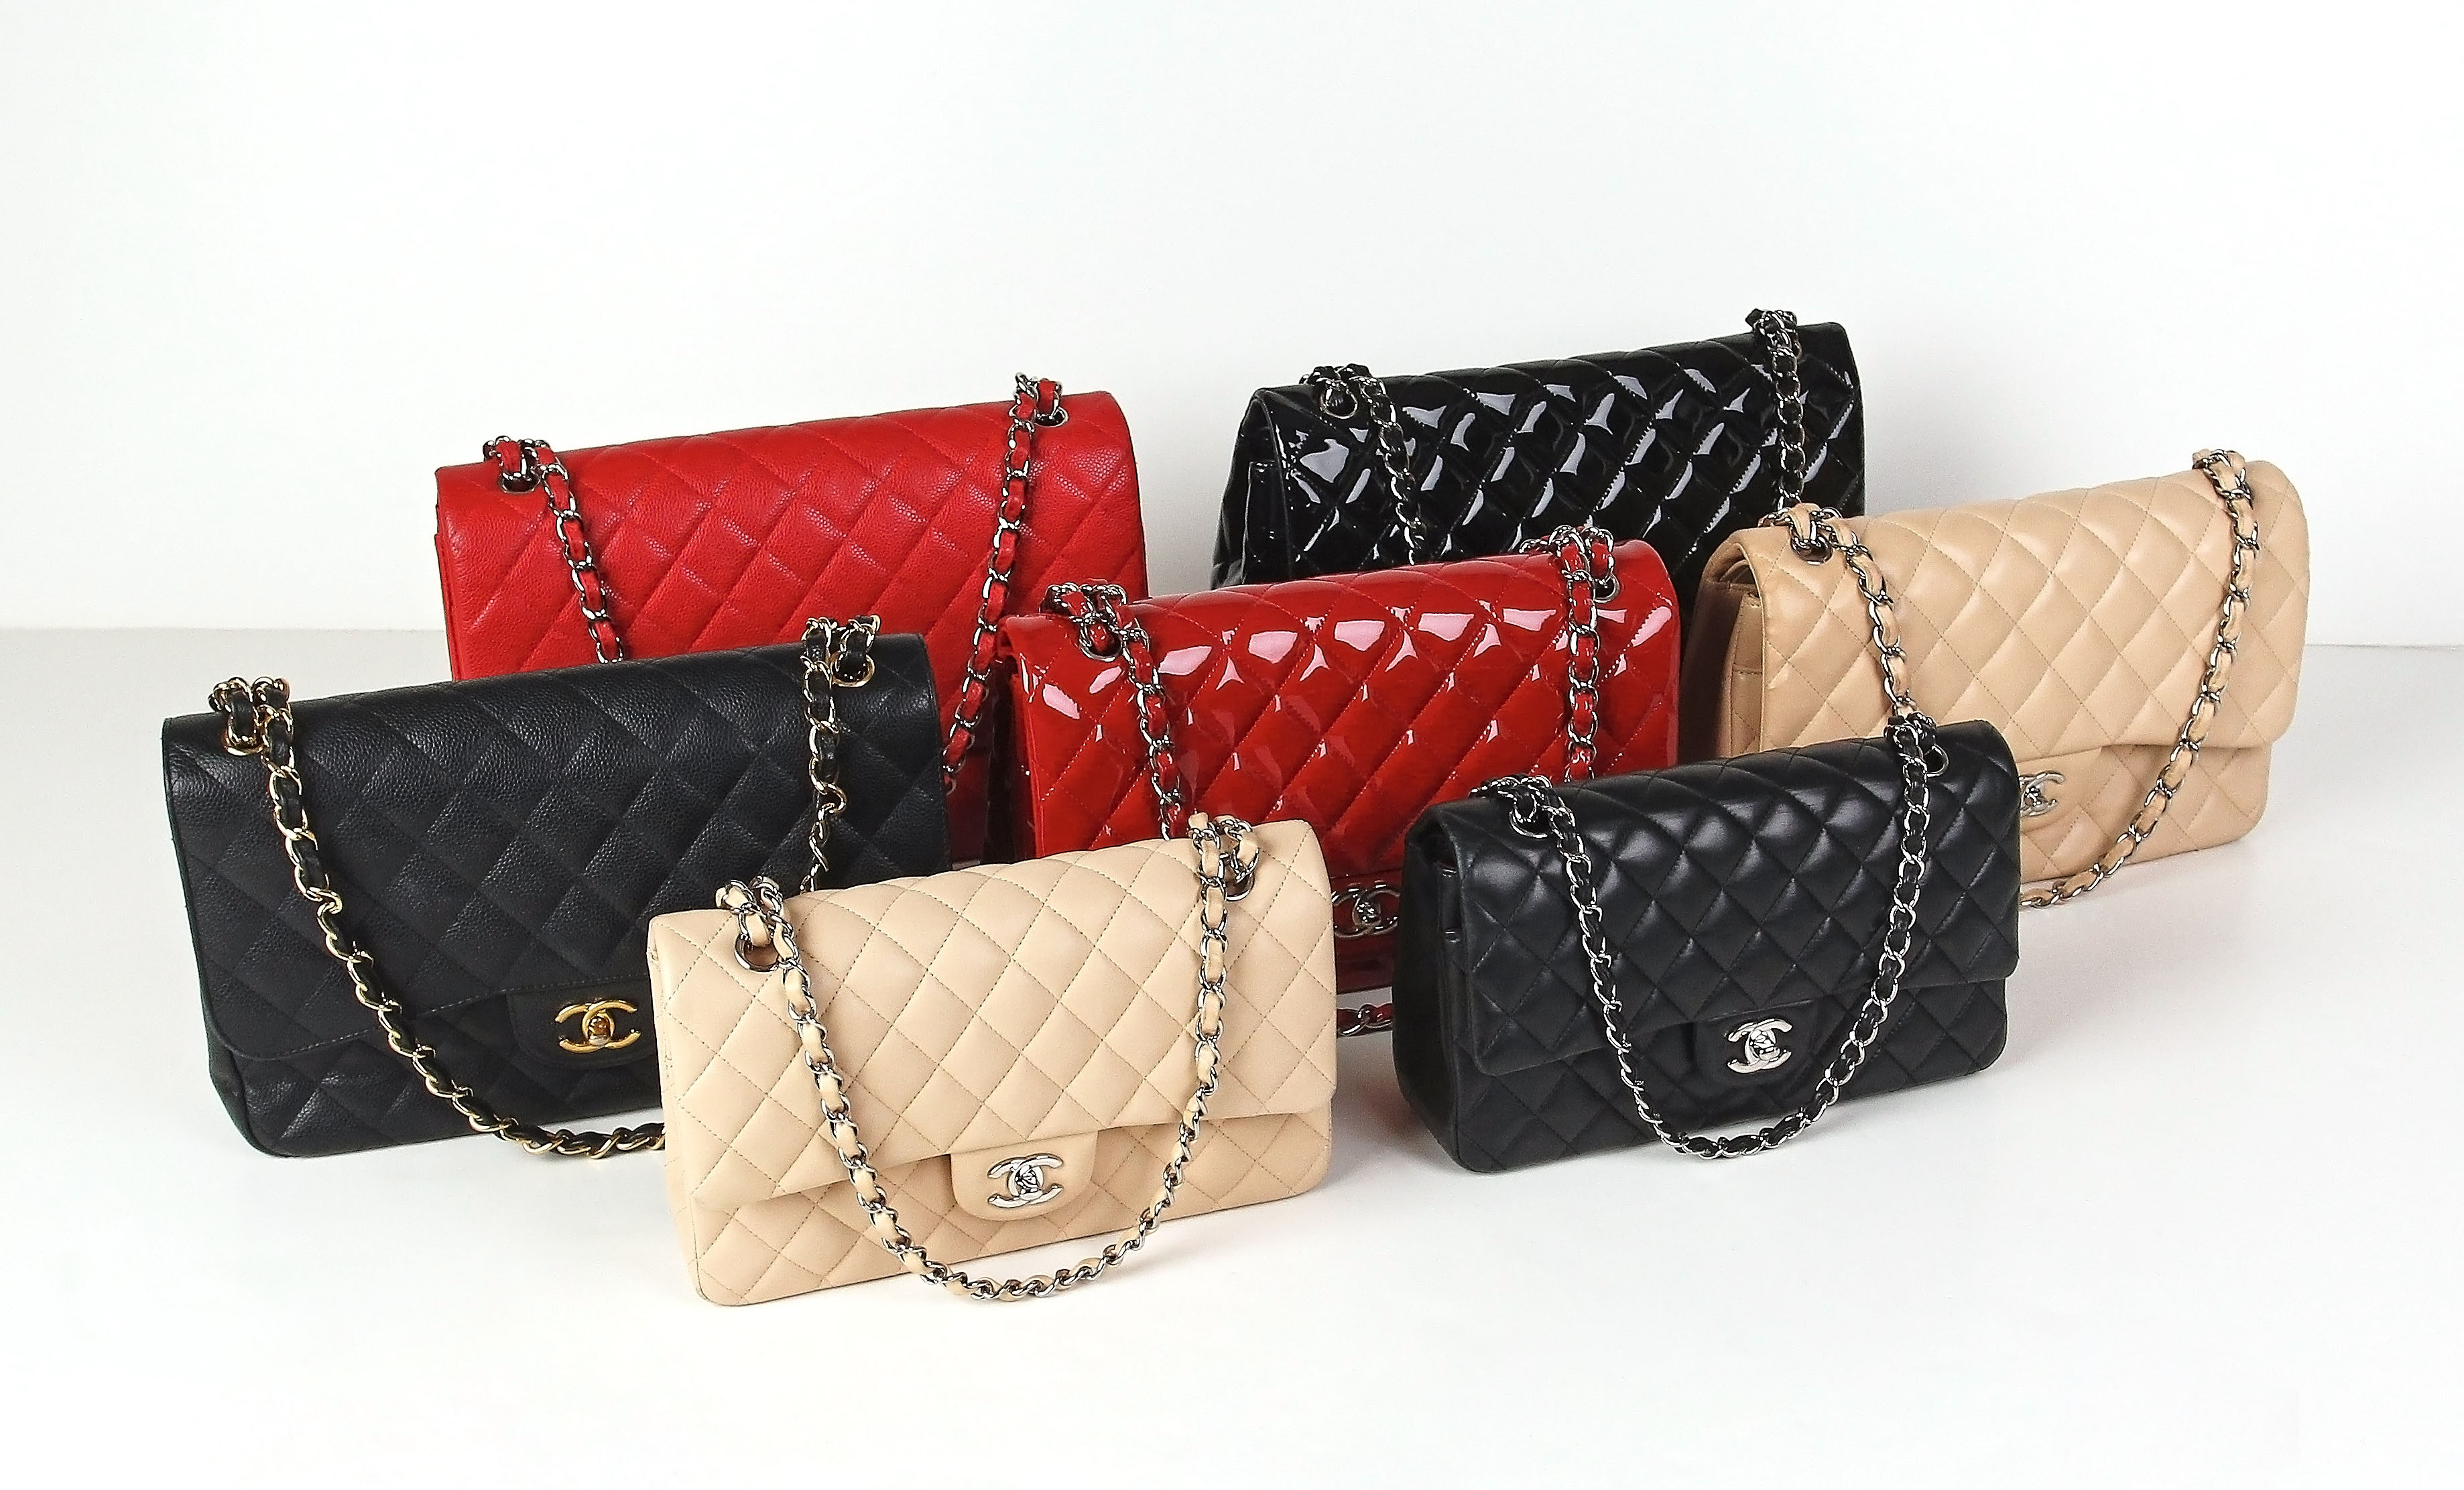 6232955a53a2 Chanel Classic Flap Bag Collection | YoogisCloset.com